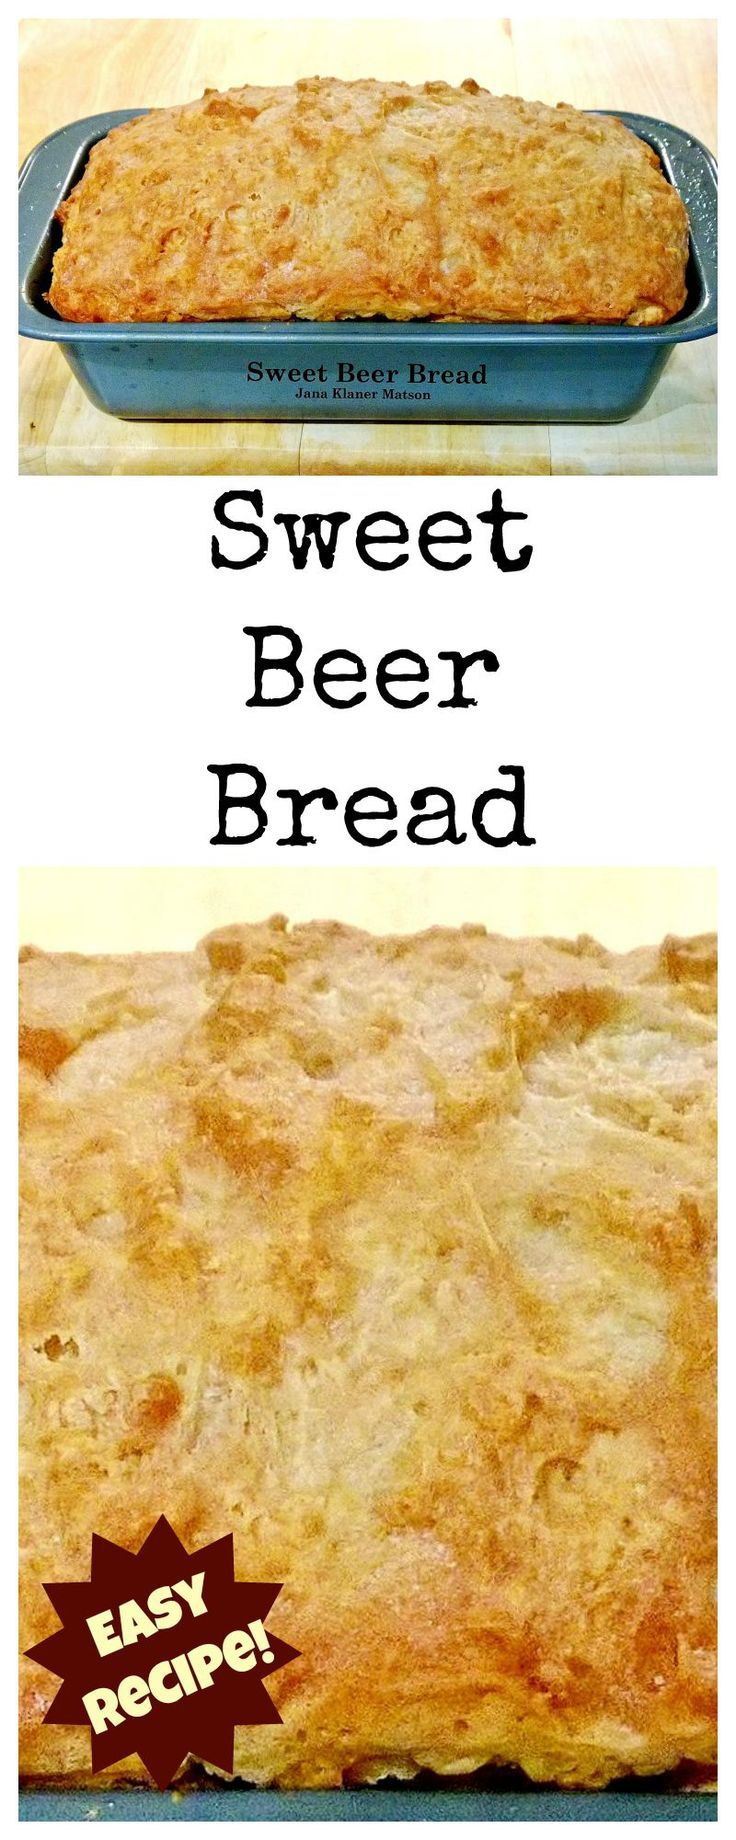 Sweet Beer Bread A VERY easy recipe, flexible to eat as a side or to have with a nice cup of afternoon tea! Always a favorite!